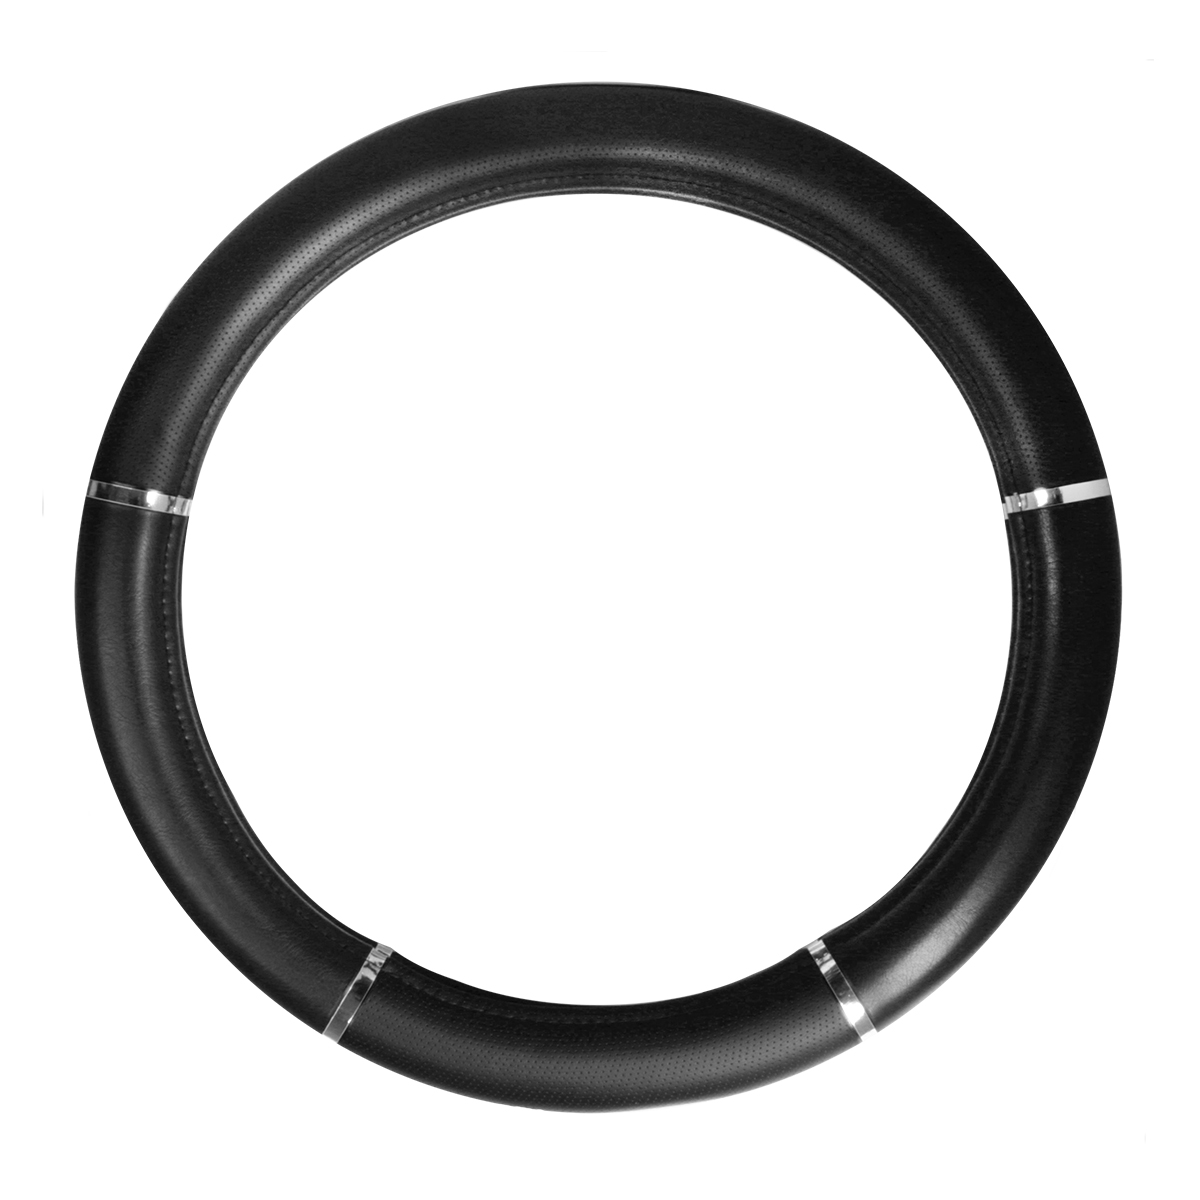 Steering Wheel Cover, Heavy Duty Black with Chrome Trim, 18""